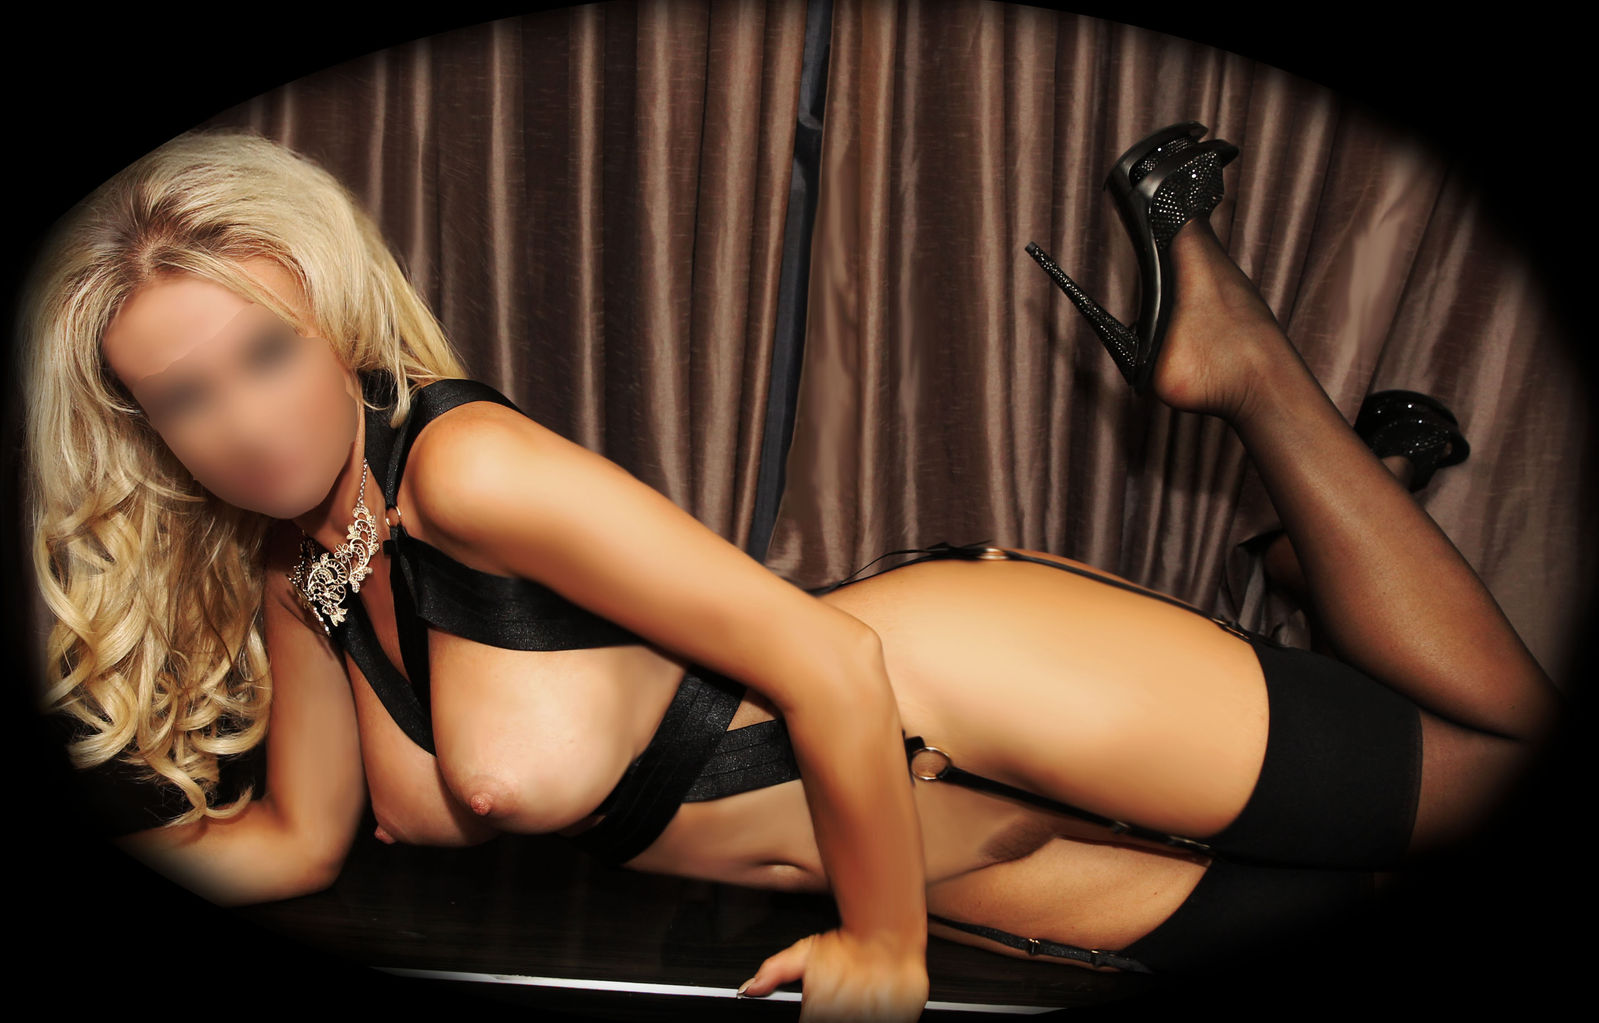 escort backpages adult service Melbourne